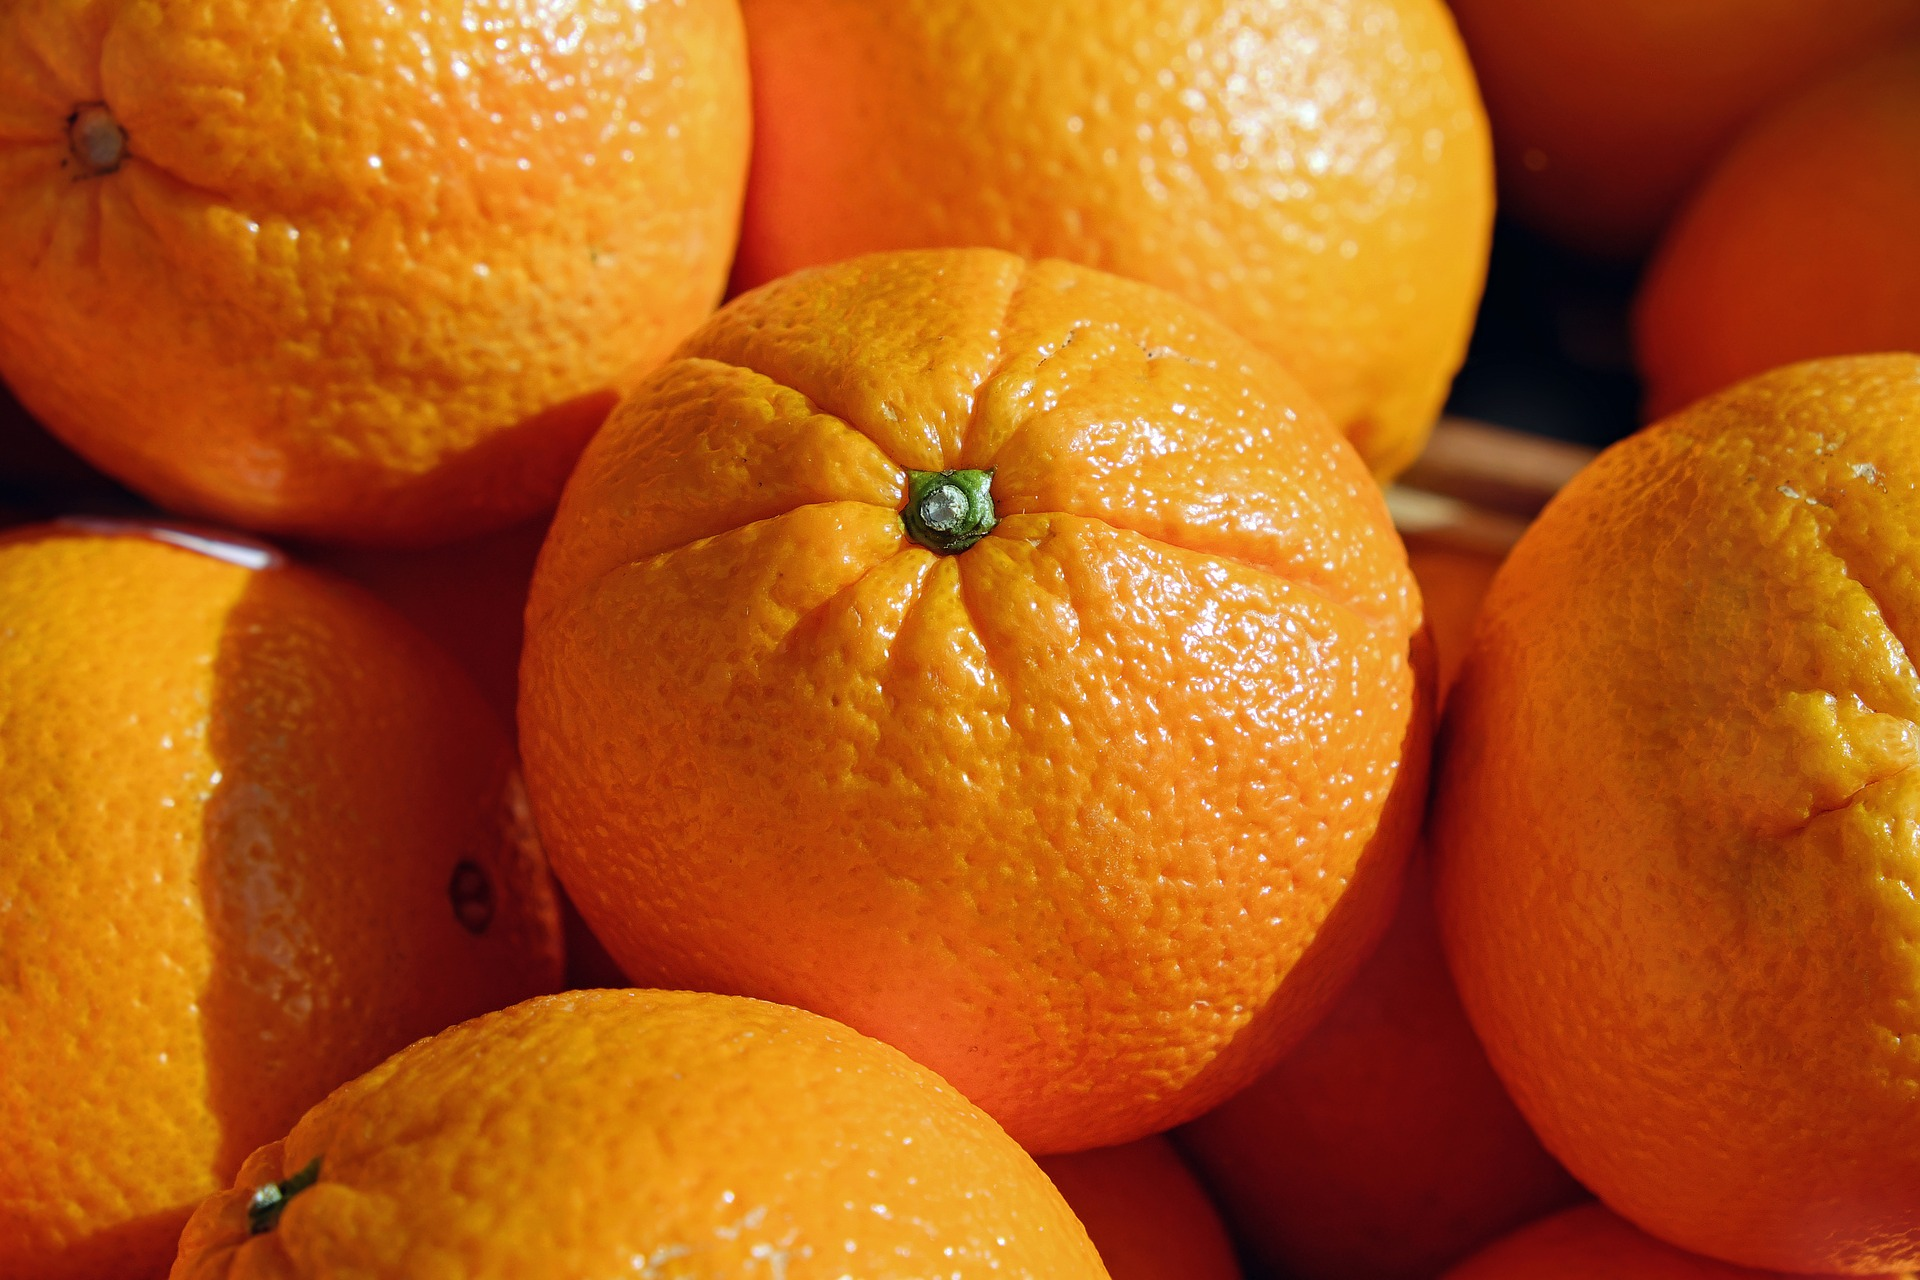 Eat citrus fruit to help you fall pregnant